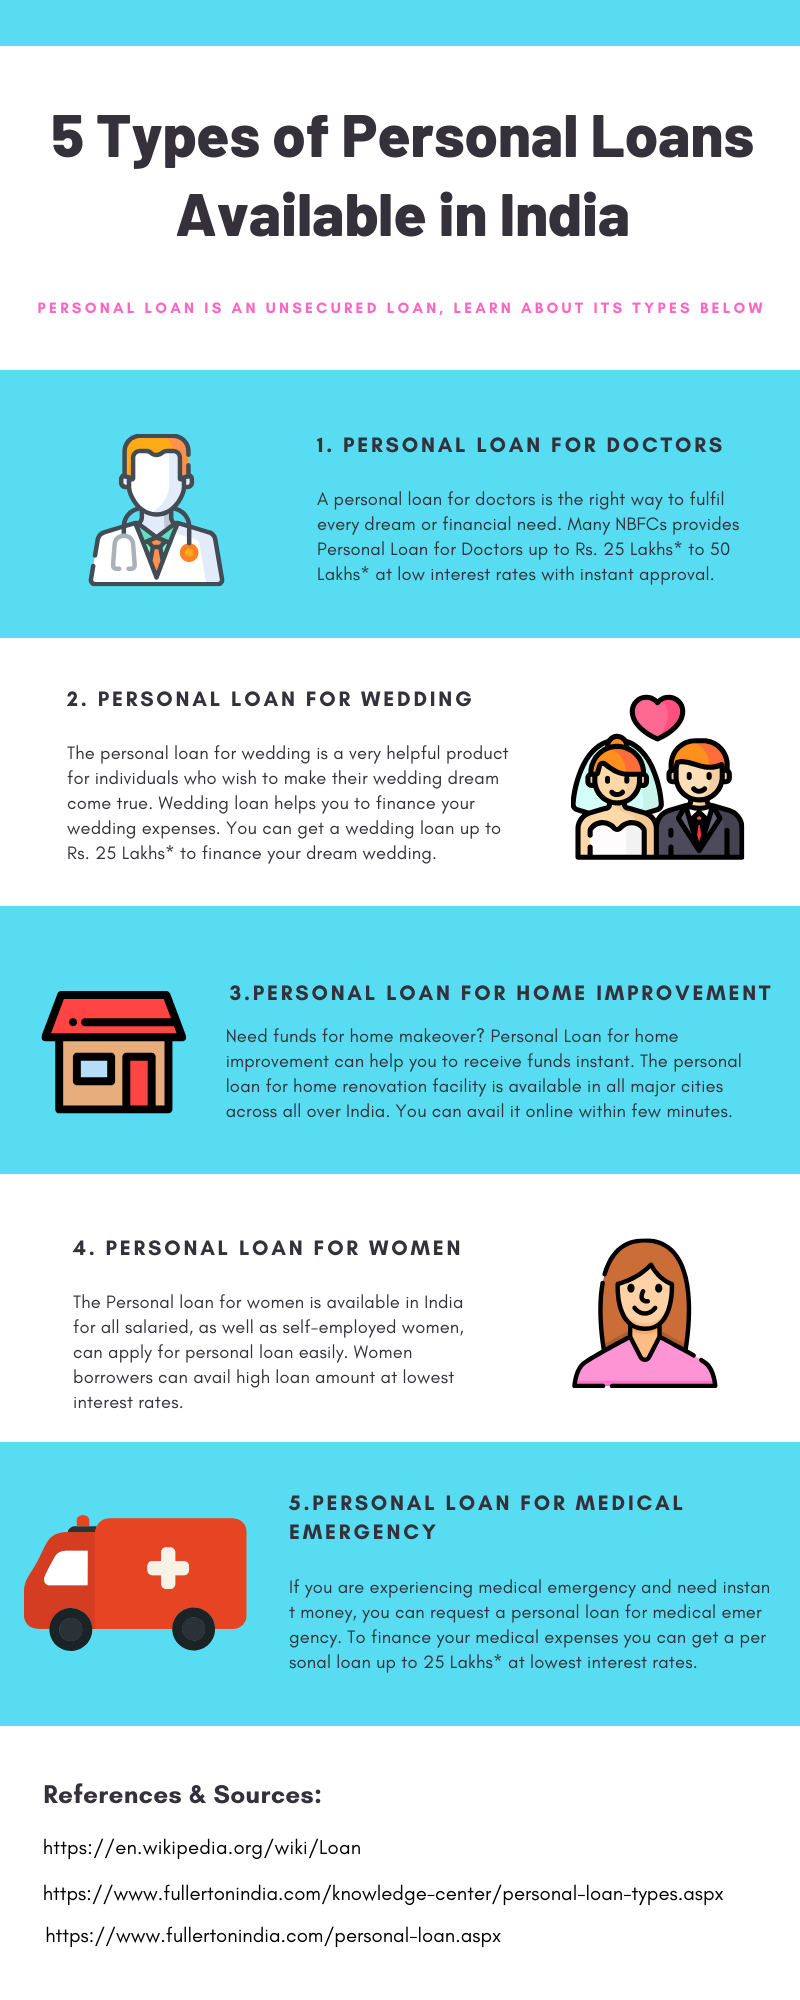 5 Types Of Personal Loans Available In India In 2020 Personal Loans Loan Unsecured Loans